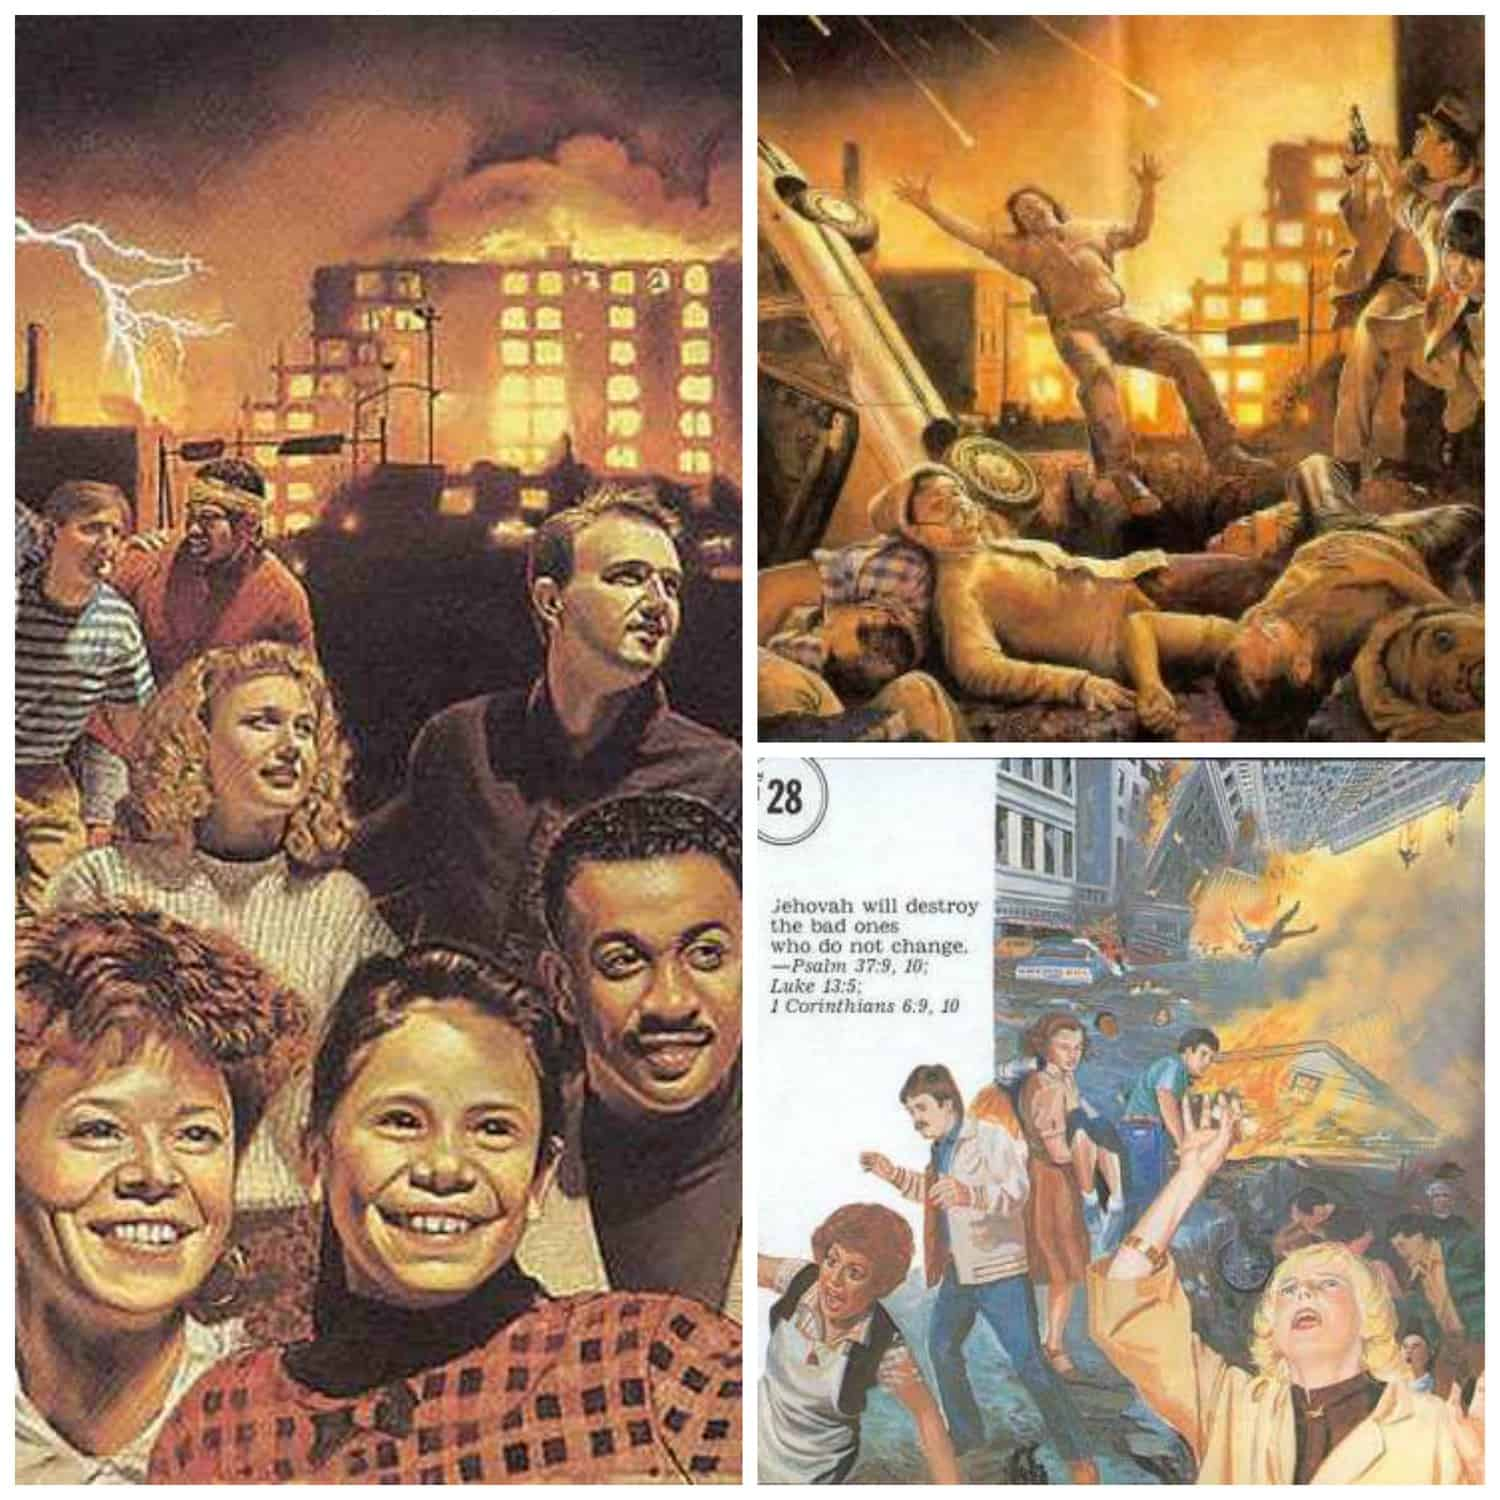 A collection of images that are used by Jehovah's witnesses